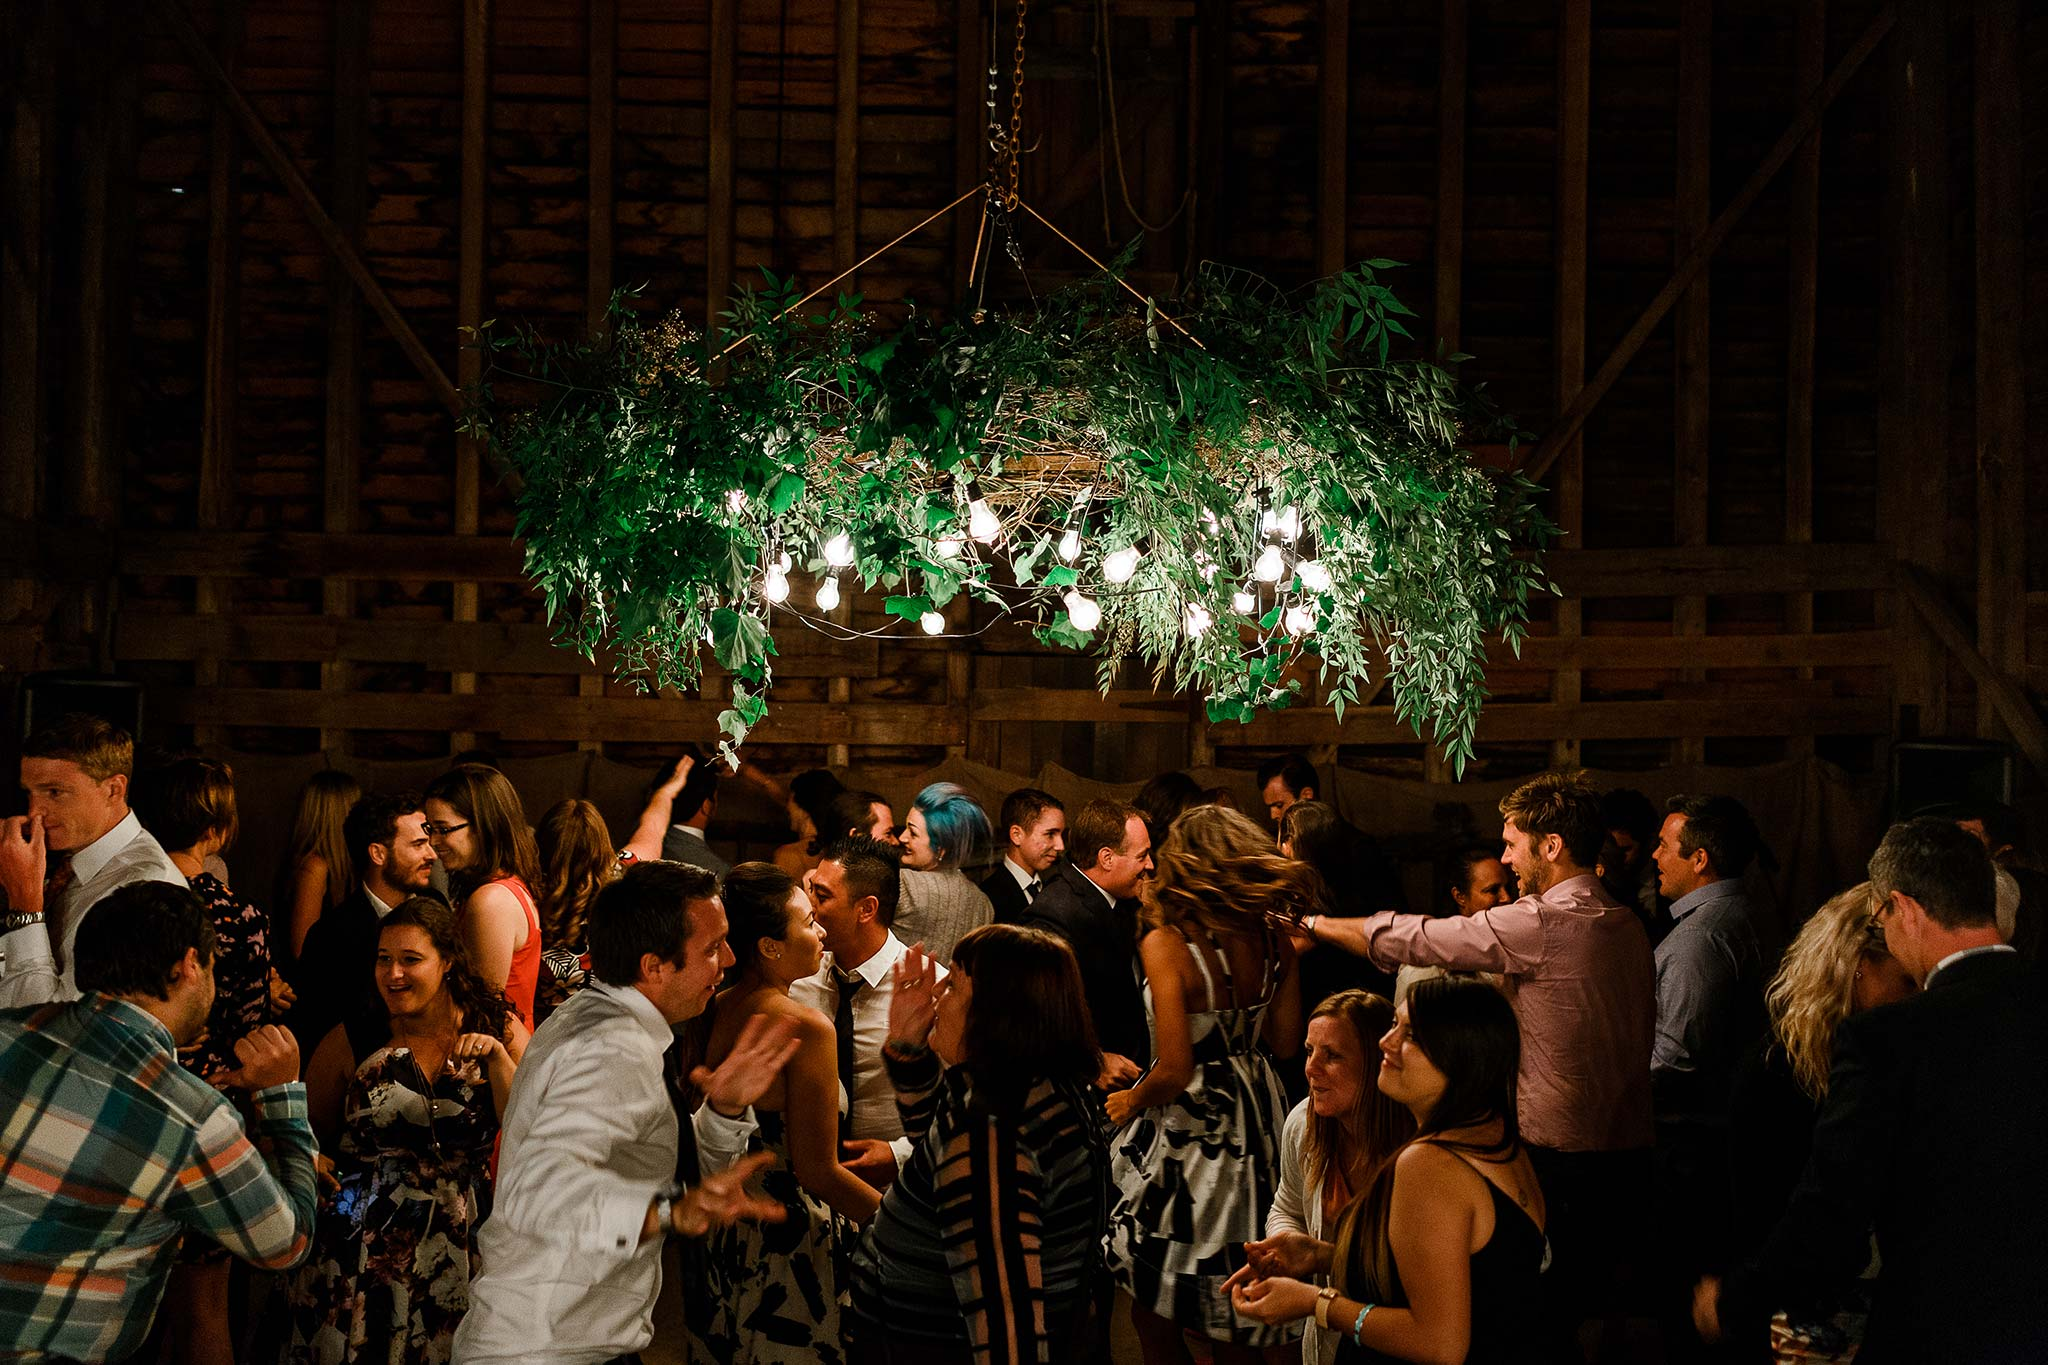 Dancing the night away under the custom made foliage chandelier